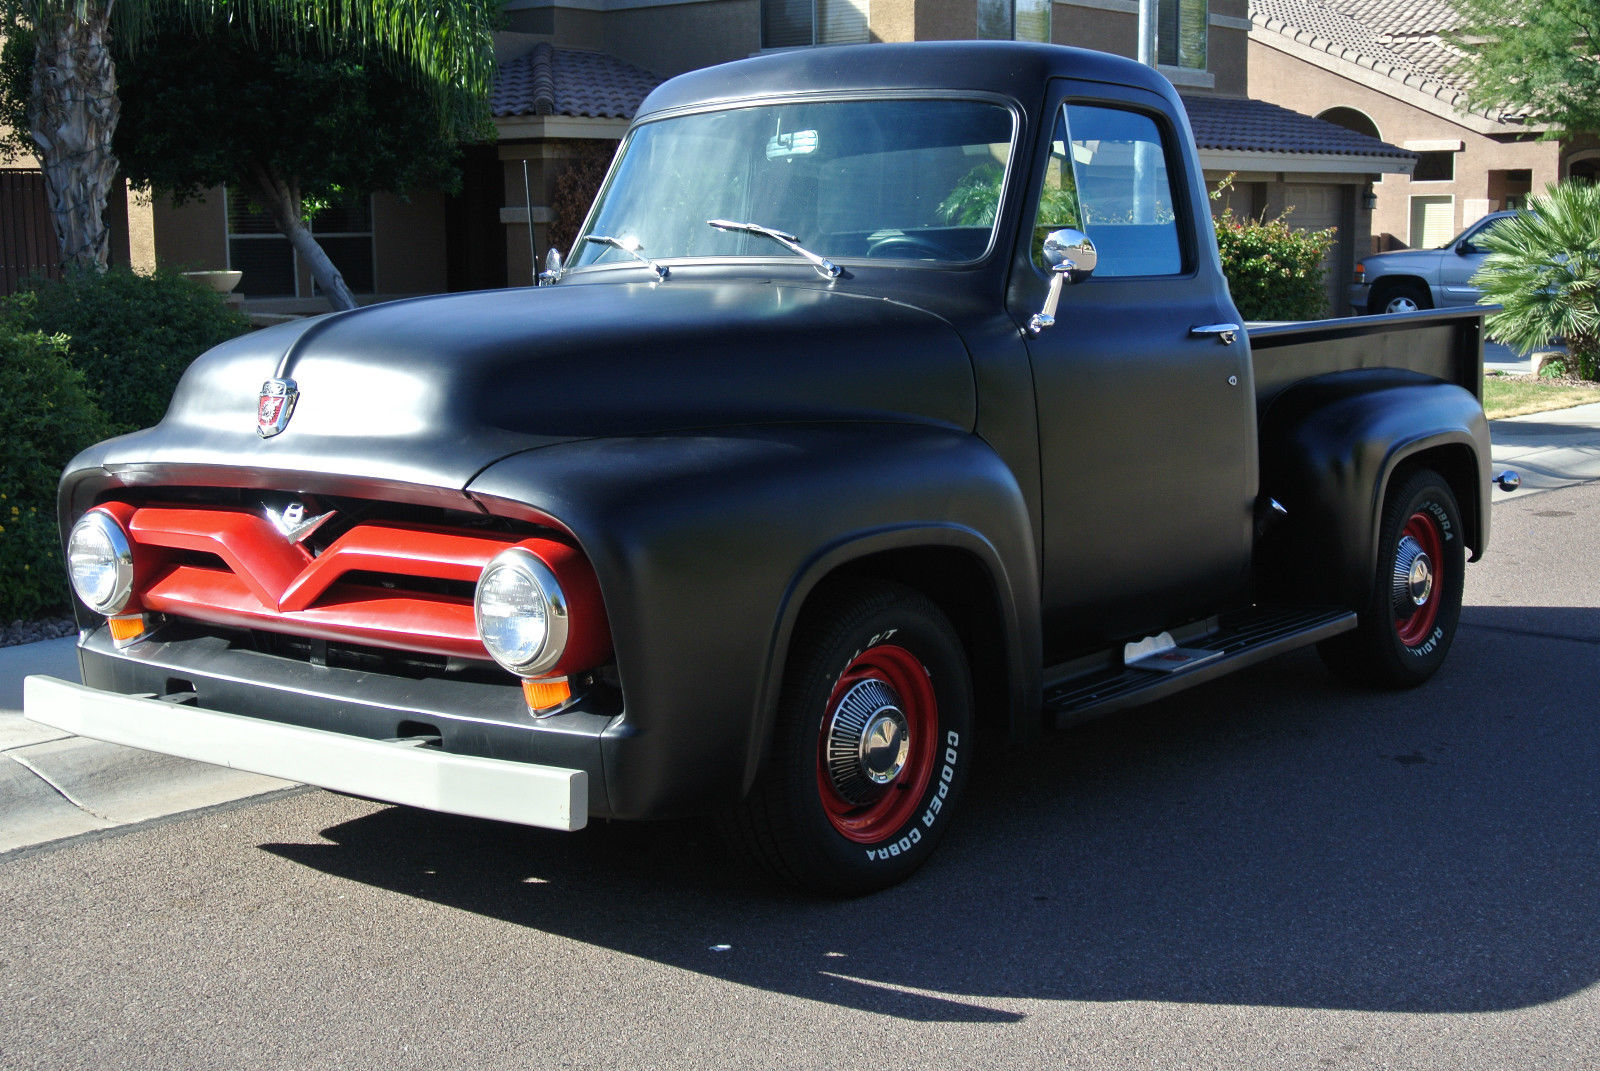 1955 Ford F100 Shop Truckrat Rodsctabarnfindloweredhotrod Truck Specifications 1954 Short Bed Black Hotrod Restomod F 100 F1